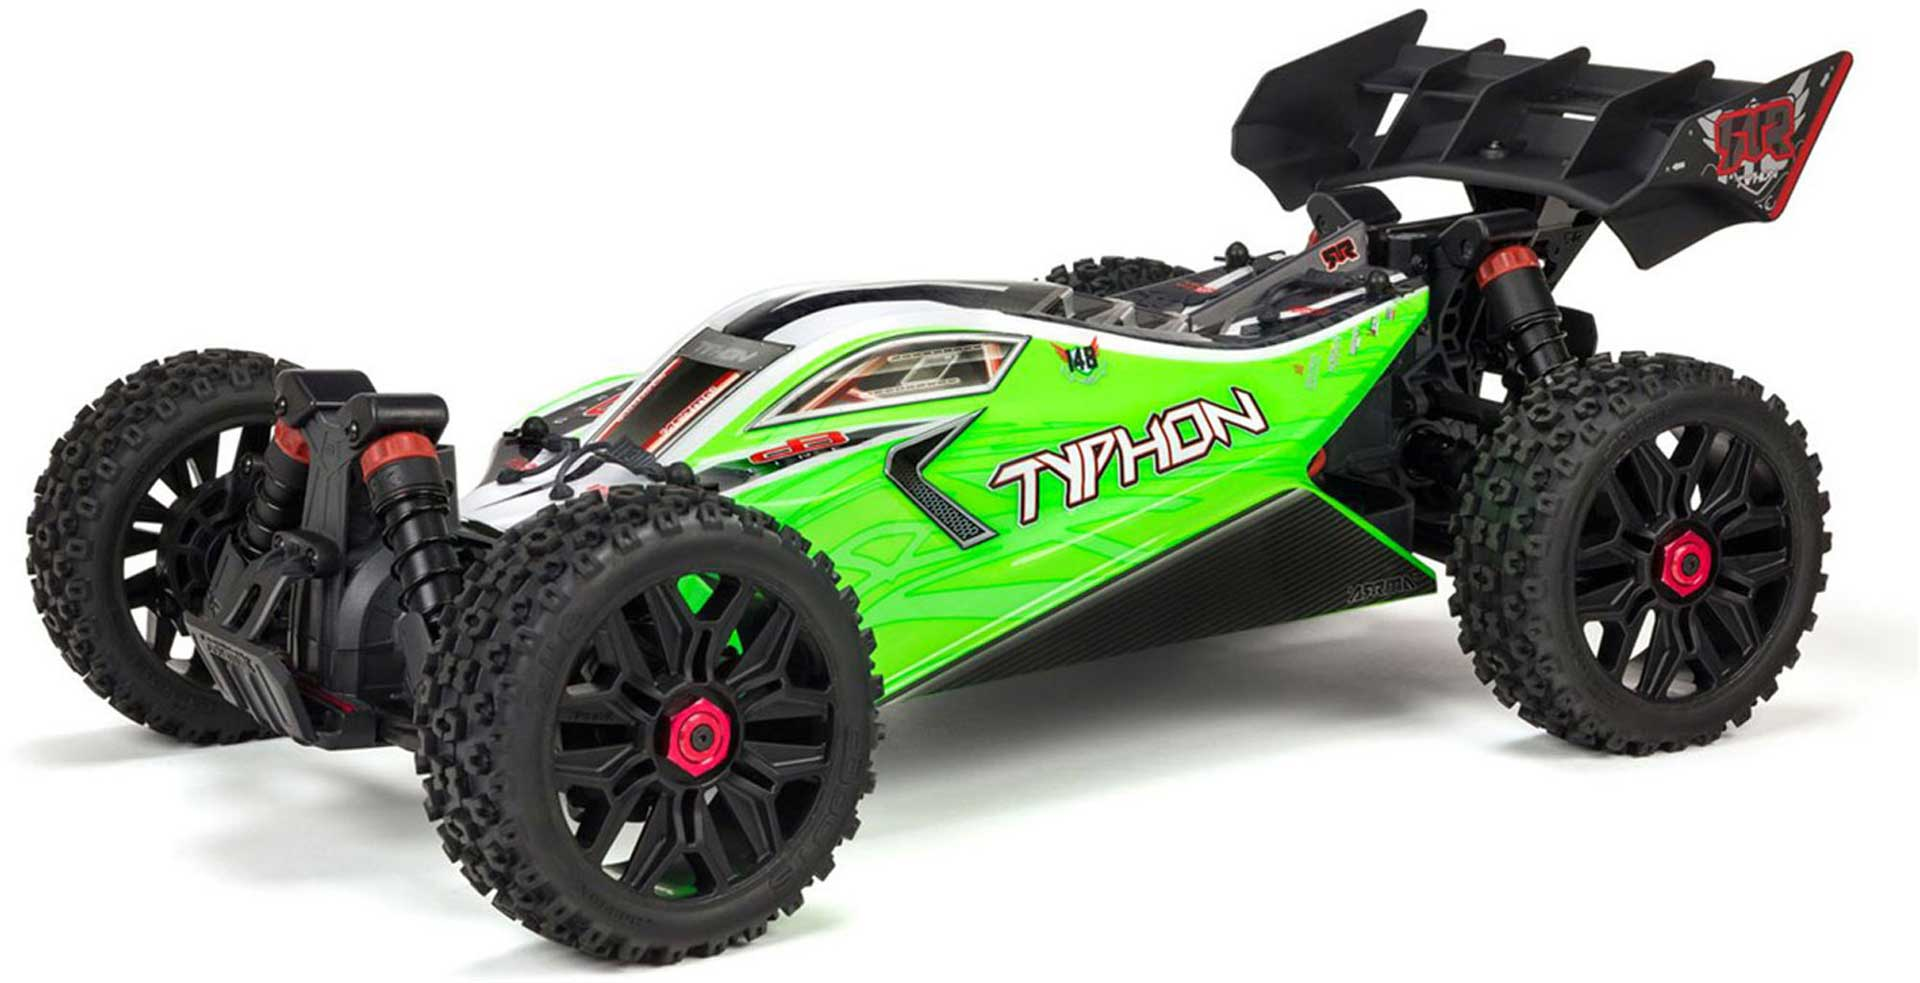 Arrma Typhon 4X4 550 Mega Brushed 1/8TH 4WD Buggy Green